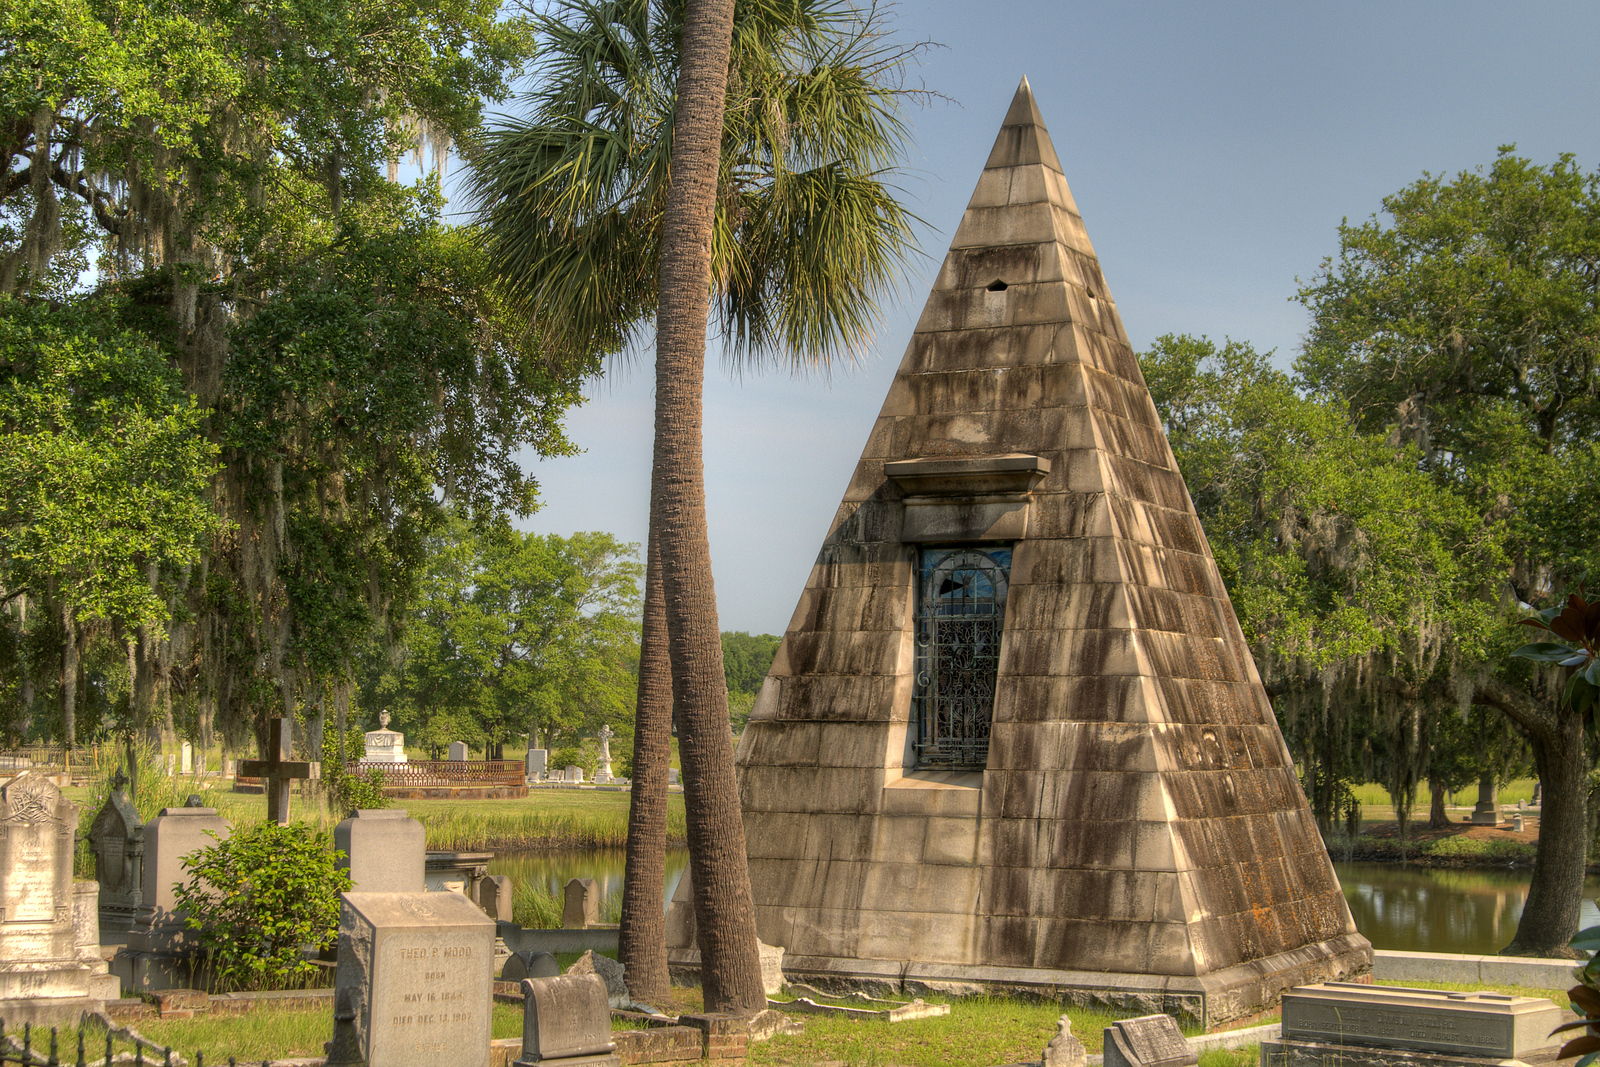 An interesting pyramidal mausoleum, resting home for William Smith and his wife Frances Susan, at Magnolia Cemetery in Charleston, SC on Wednesday, July 9, 2014. Copyright 2014 Jason Barnette The cemetery was dedicated in 1850 and includes many beautiful examples of architecture and unique mausoleums. The cemetery is also the final resting place of the H.L. Hunley crew, buried with full military honors in 2004.